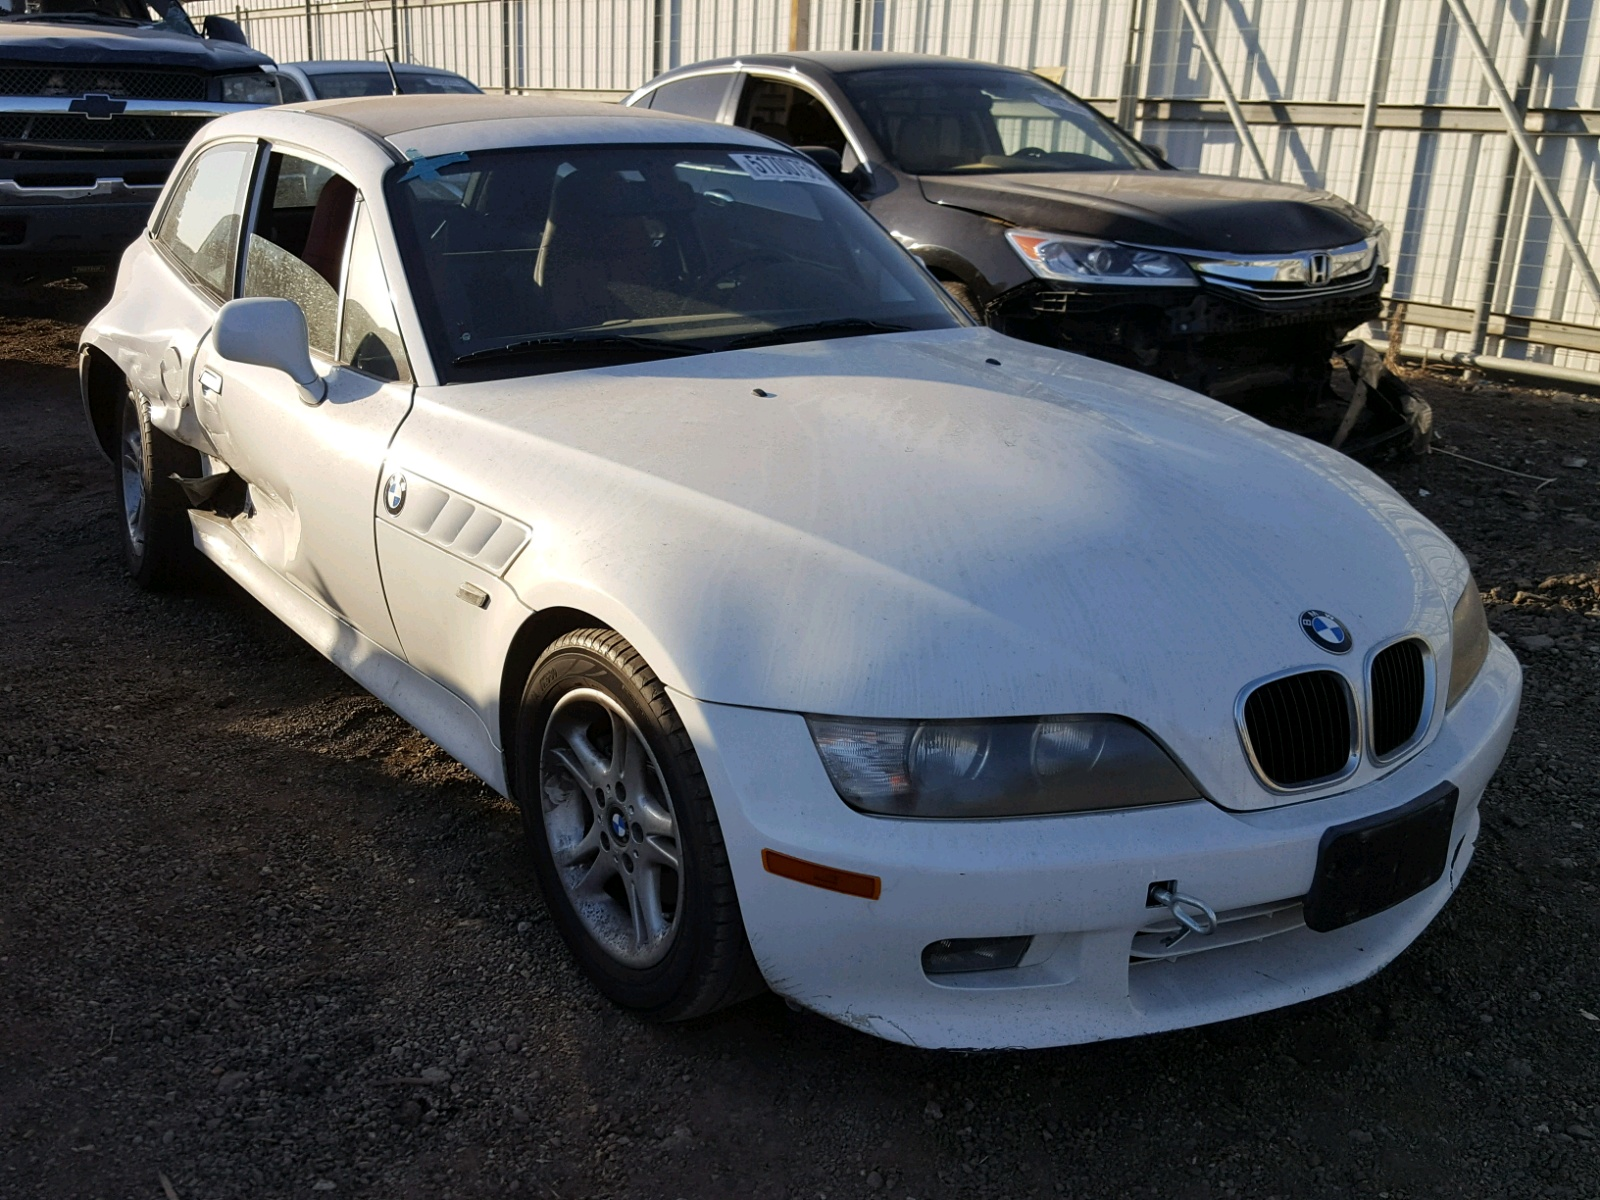 2000 Bmw Z3 28 28L 6 In CA San Diego 4USCK5342YLE95778 For